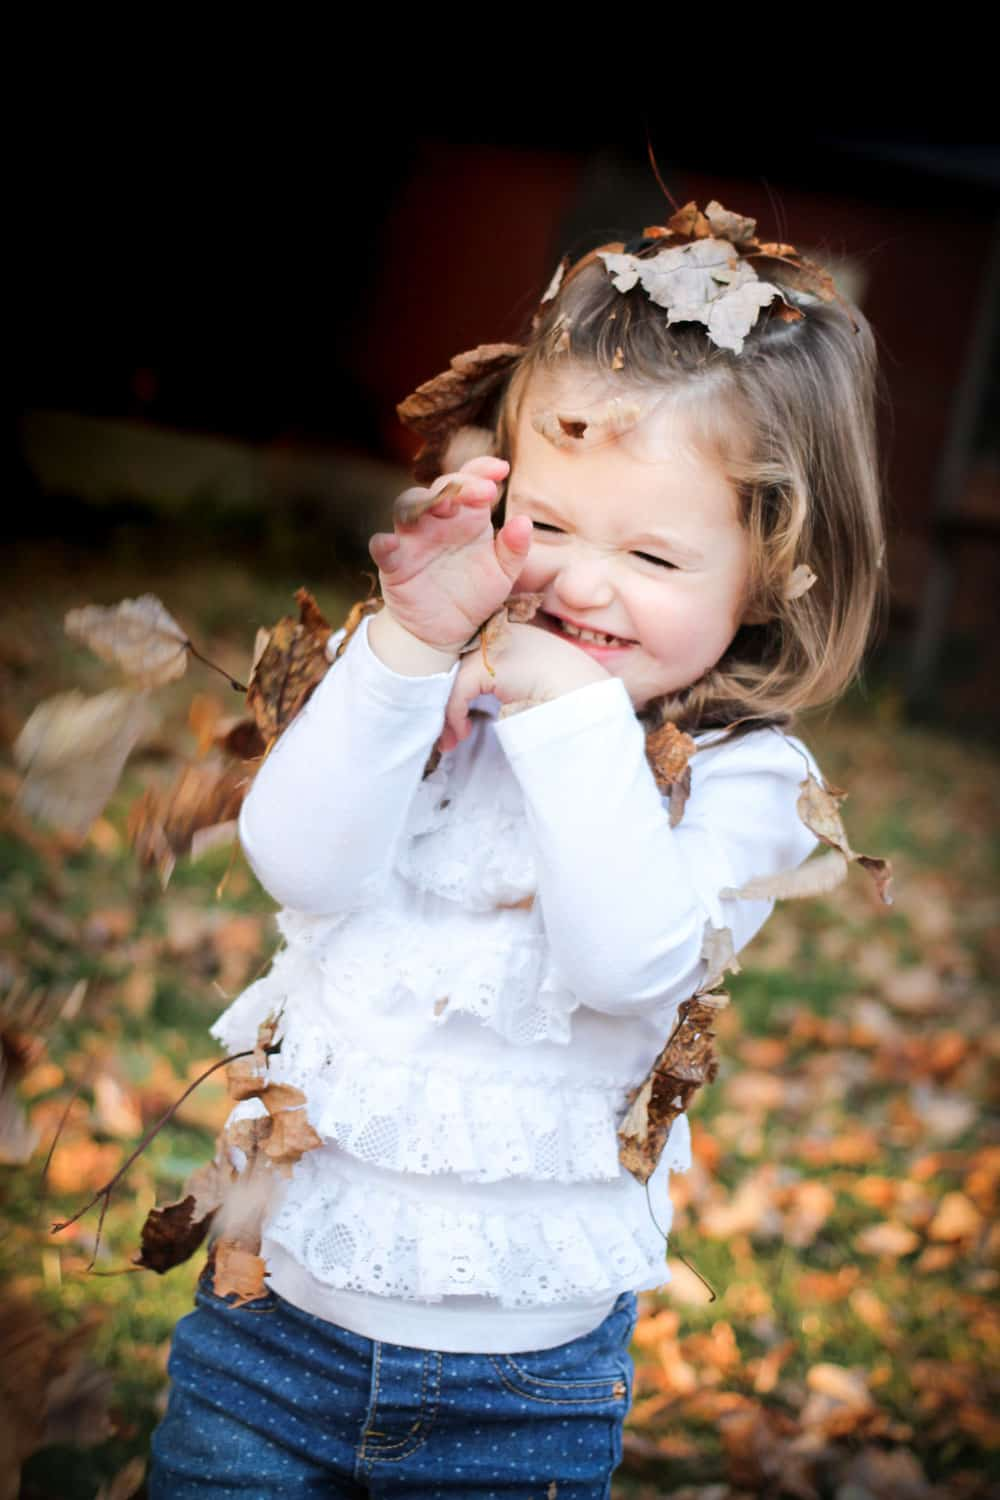 5 Quick Child Photography Tips and Ideas